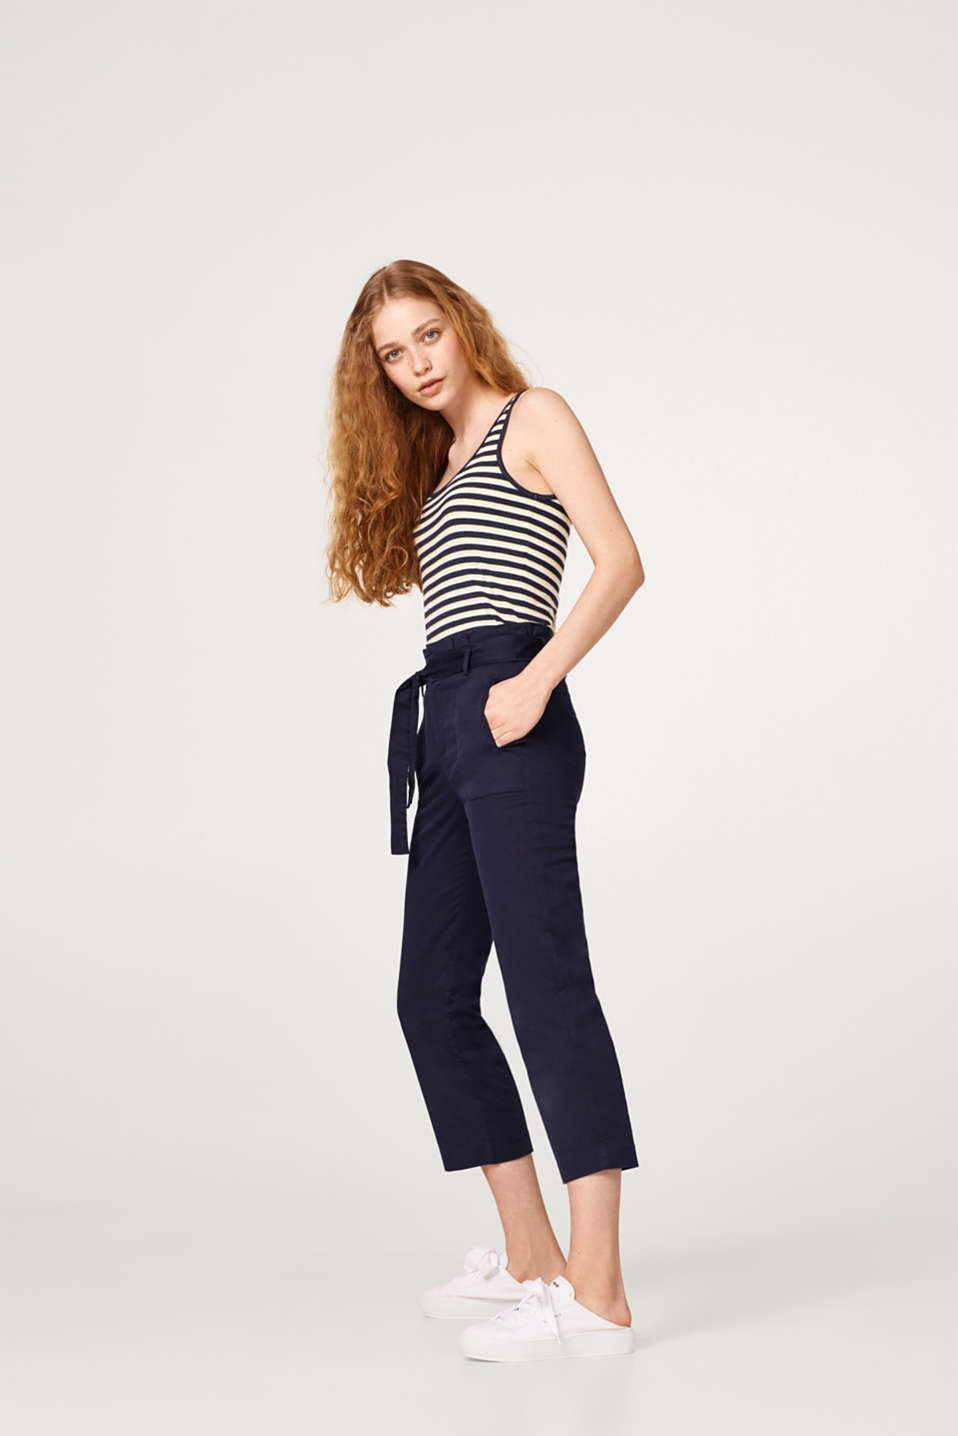 Striped vest with stretch for comfort